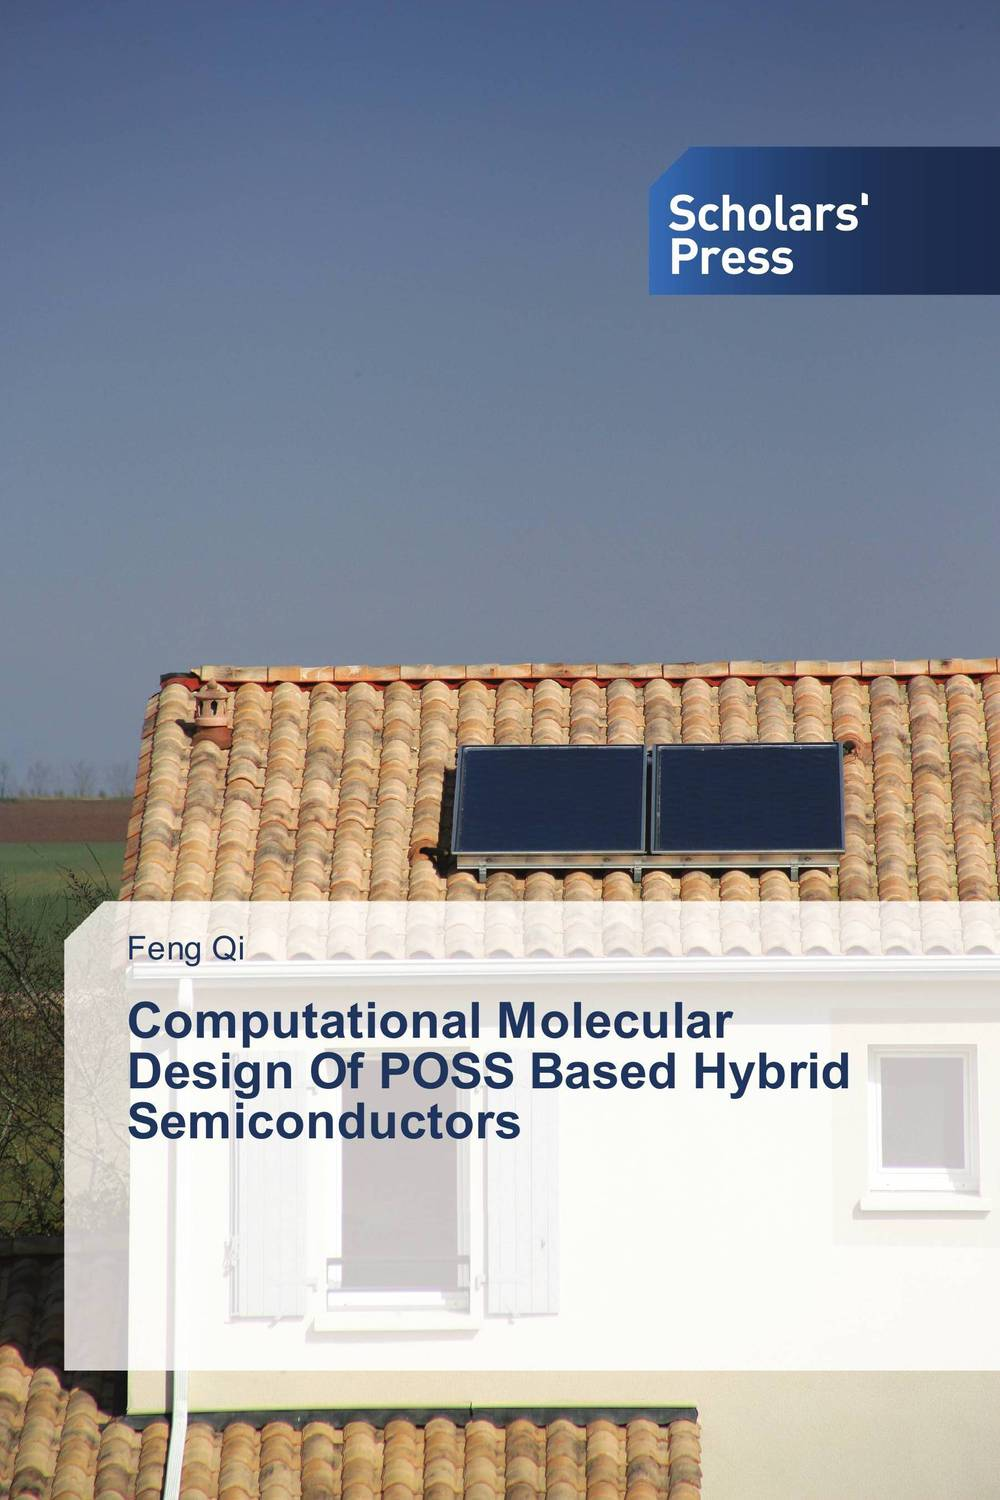 Computational Molecular Design Of POSS Based Hybrid Semiconductors development of a computational interface for small hydropower plant